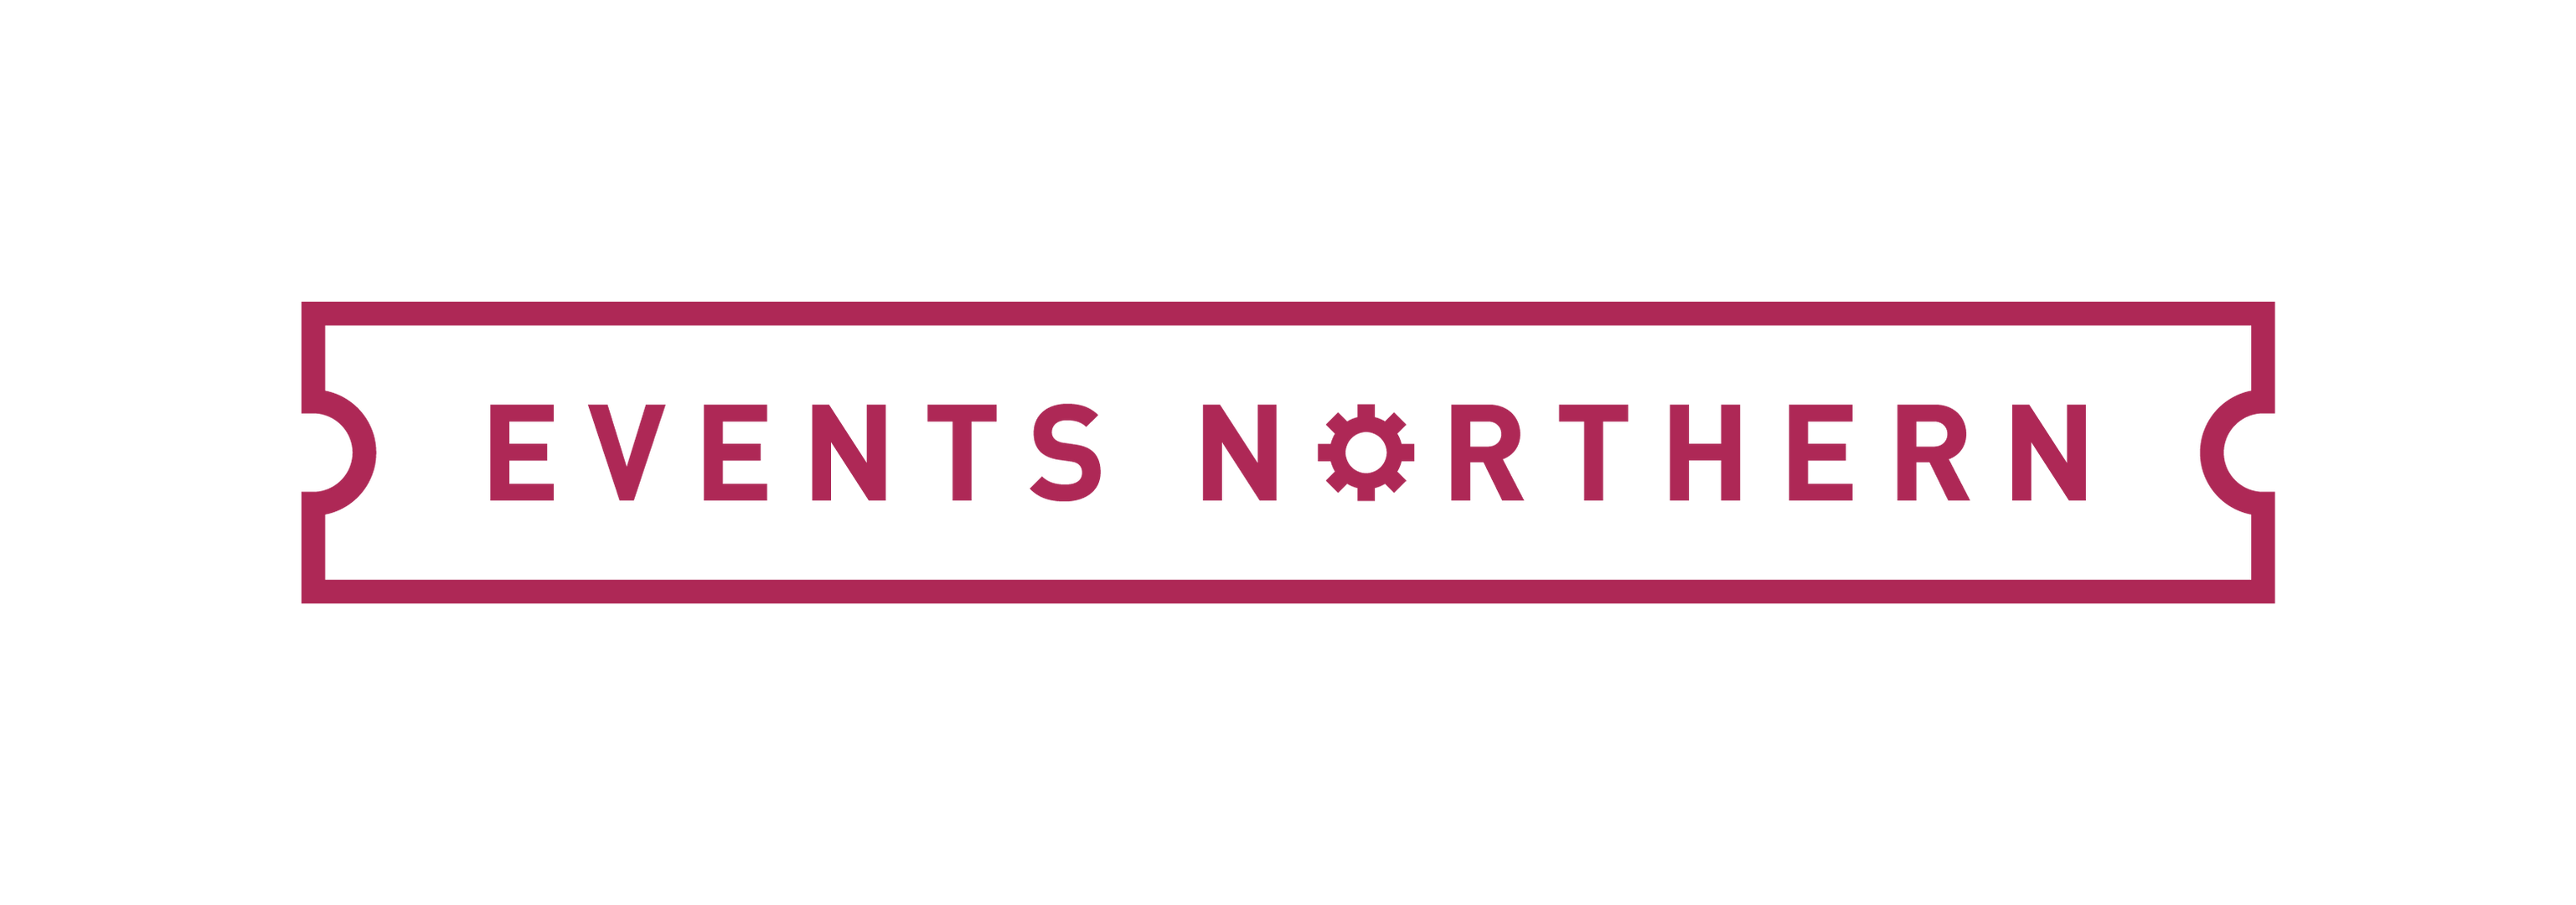 EventsNorthern_Primary_RGB_Red.png